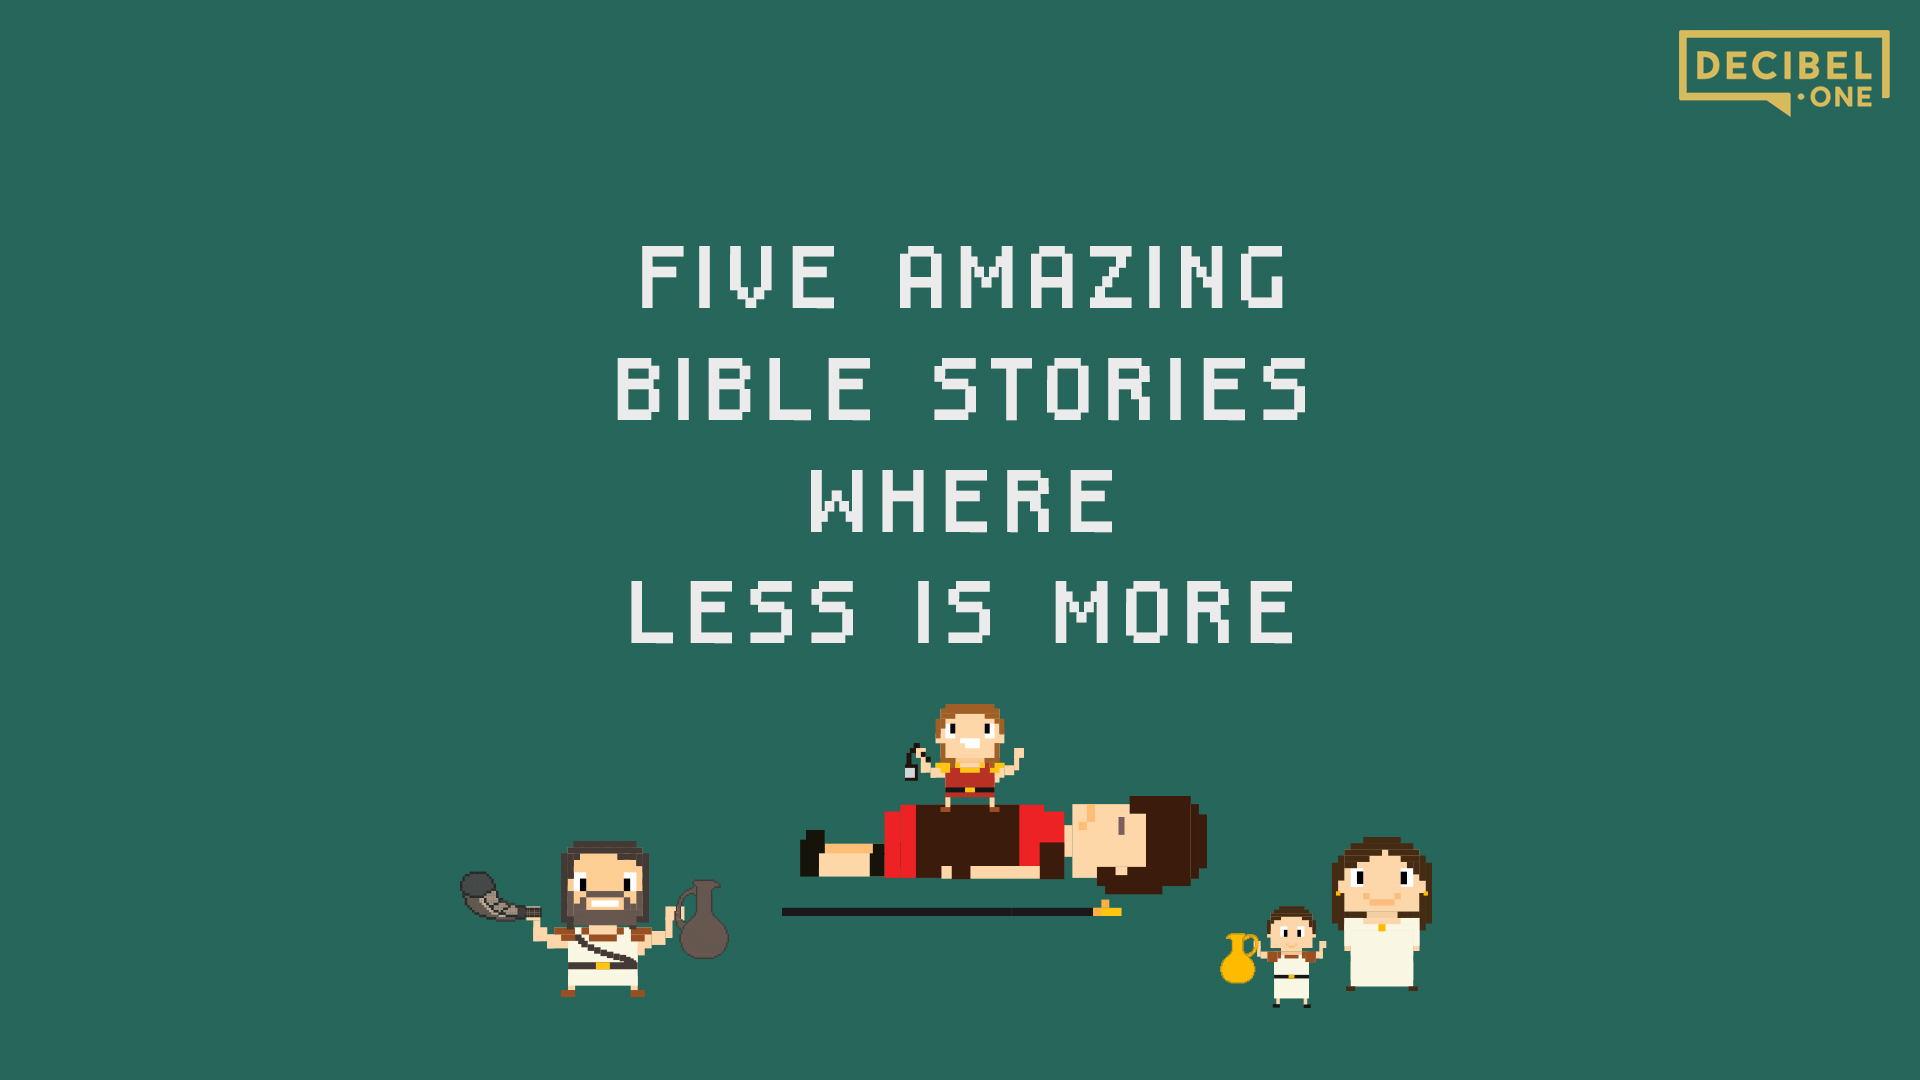 5 Amazing Bible Stories Where Less Is More Decibel